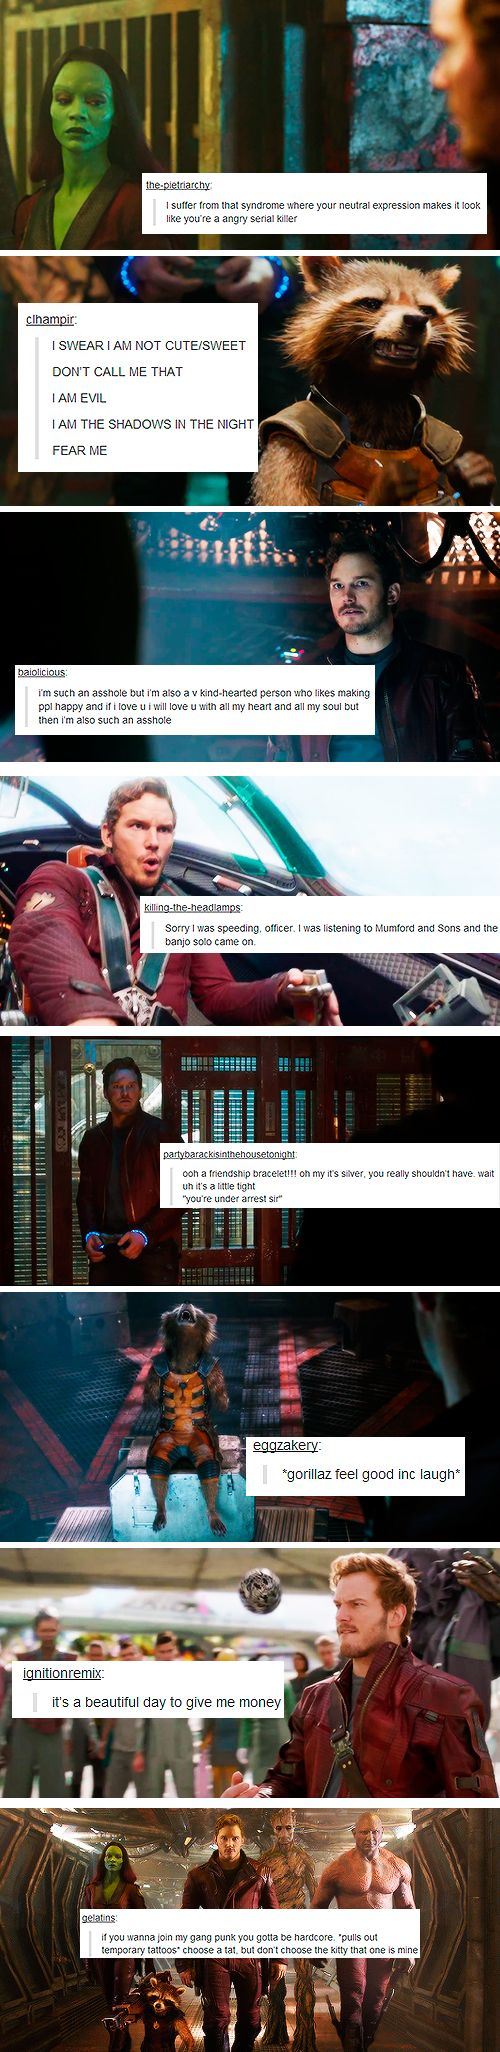 Guardians of the Galaxy--- this is the funniest thing I've seen all day. I actually know both of the songs mentioned, I feel so UPDATED IN POP CULTURE